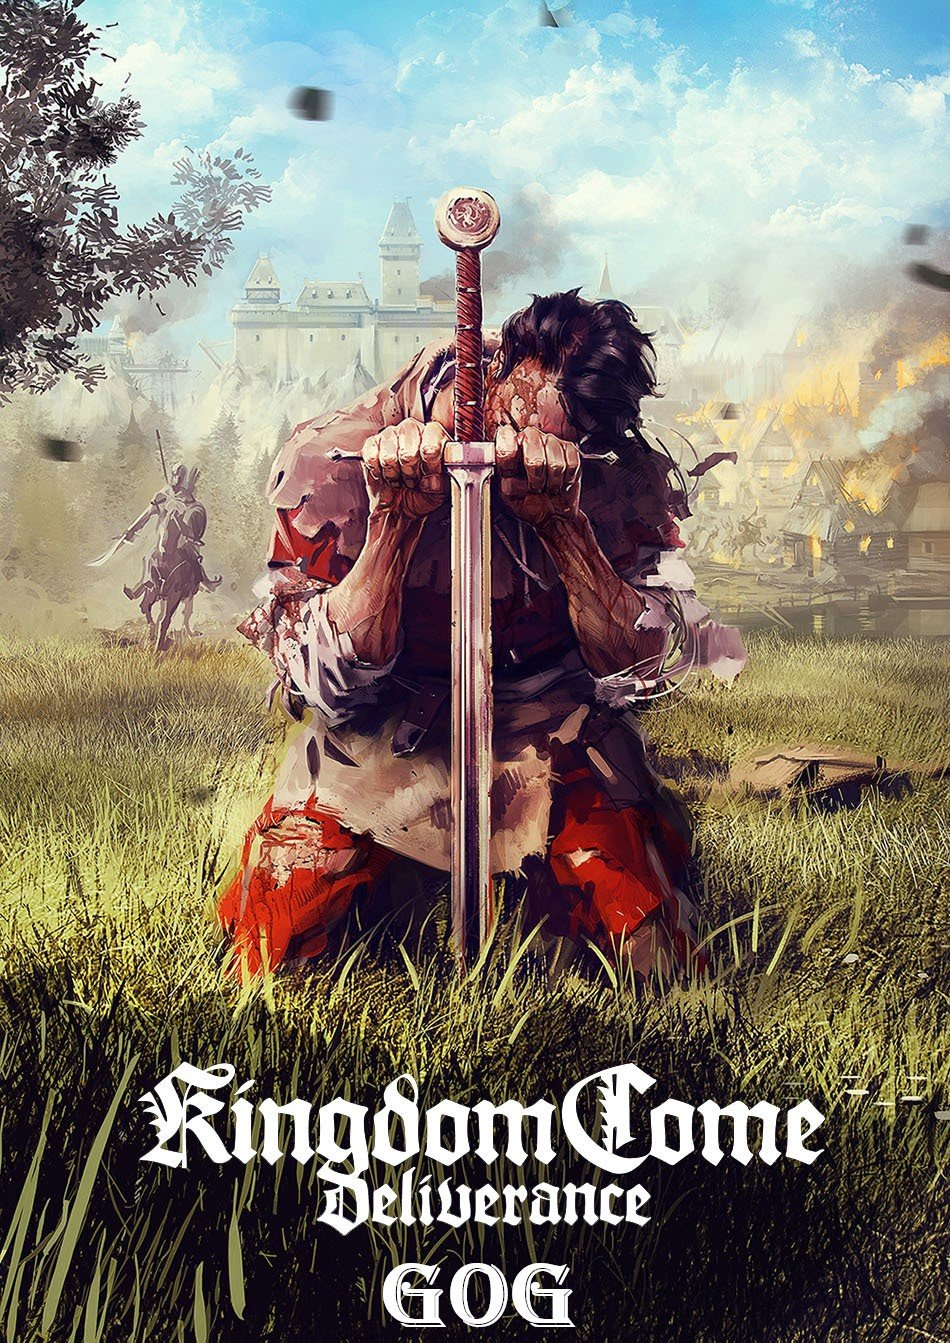 Kingdom Come: Deliverance [GOG] (2018) PC | Лицензия